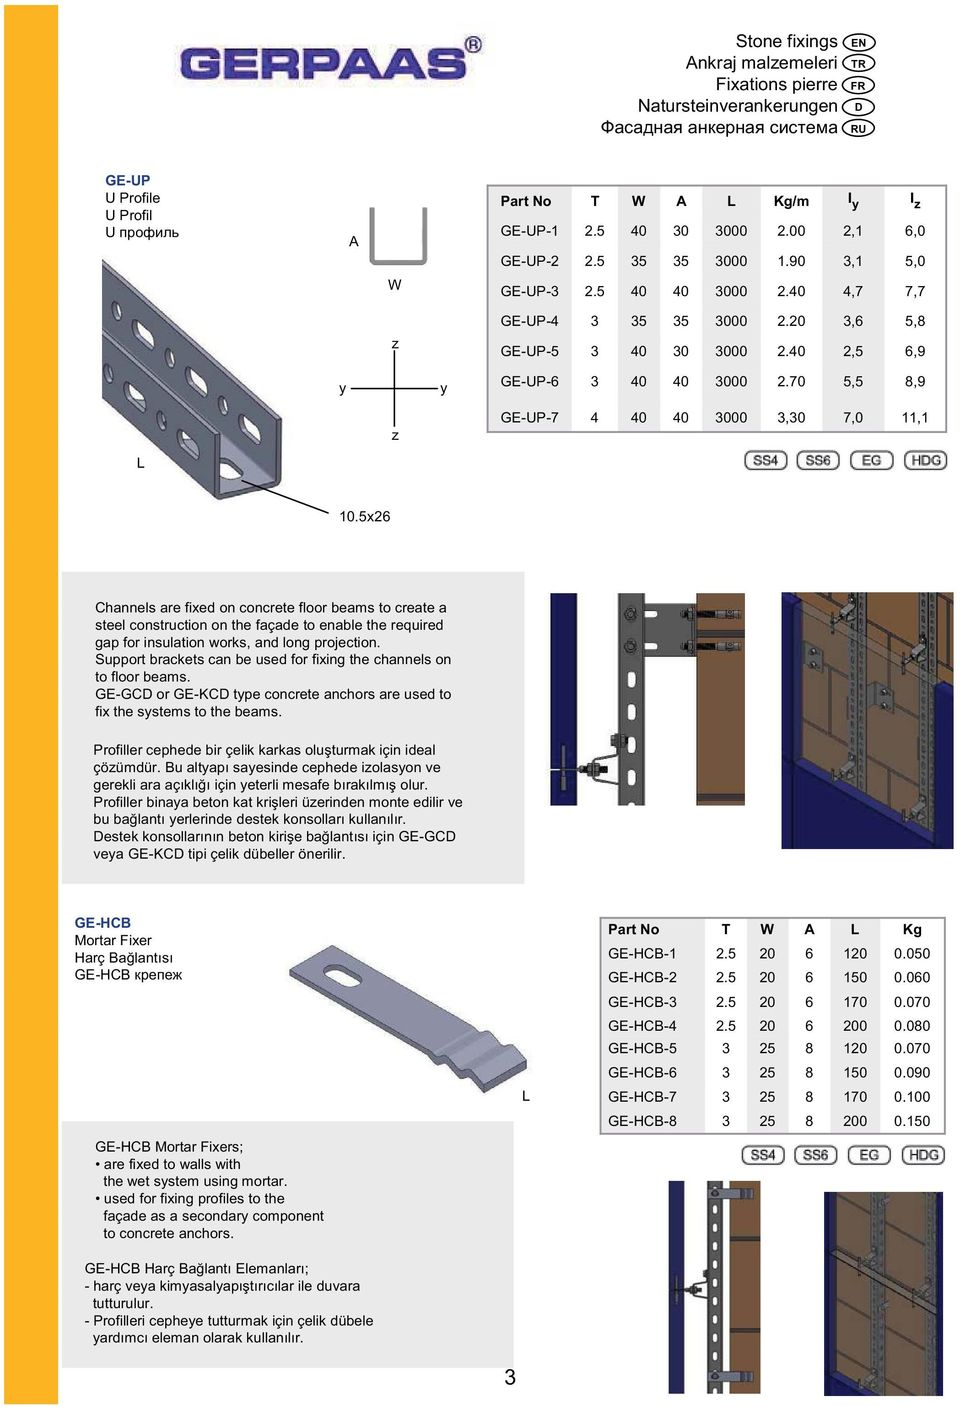 Support brackets can be used for fixing the channels on to floor beams. GE-GC or GE-KC type concrete anchors are used to fix the systems to the beams.